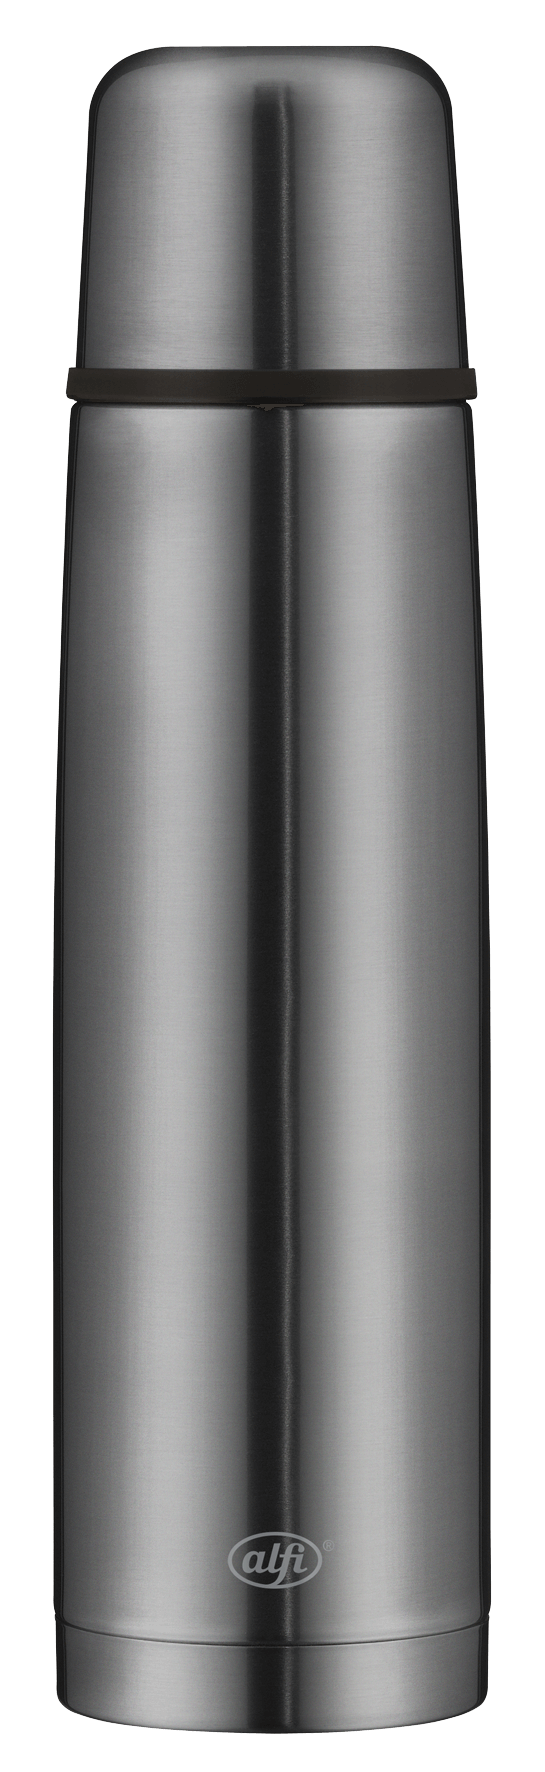 Alfi-Isotherm-Perfect-1-0-L-Space-Grey